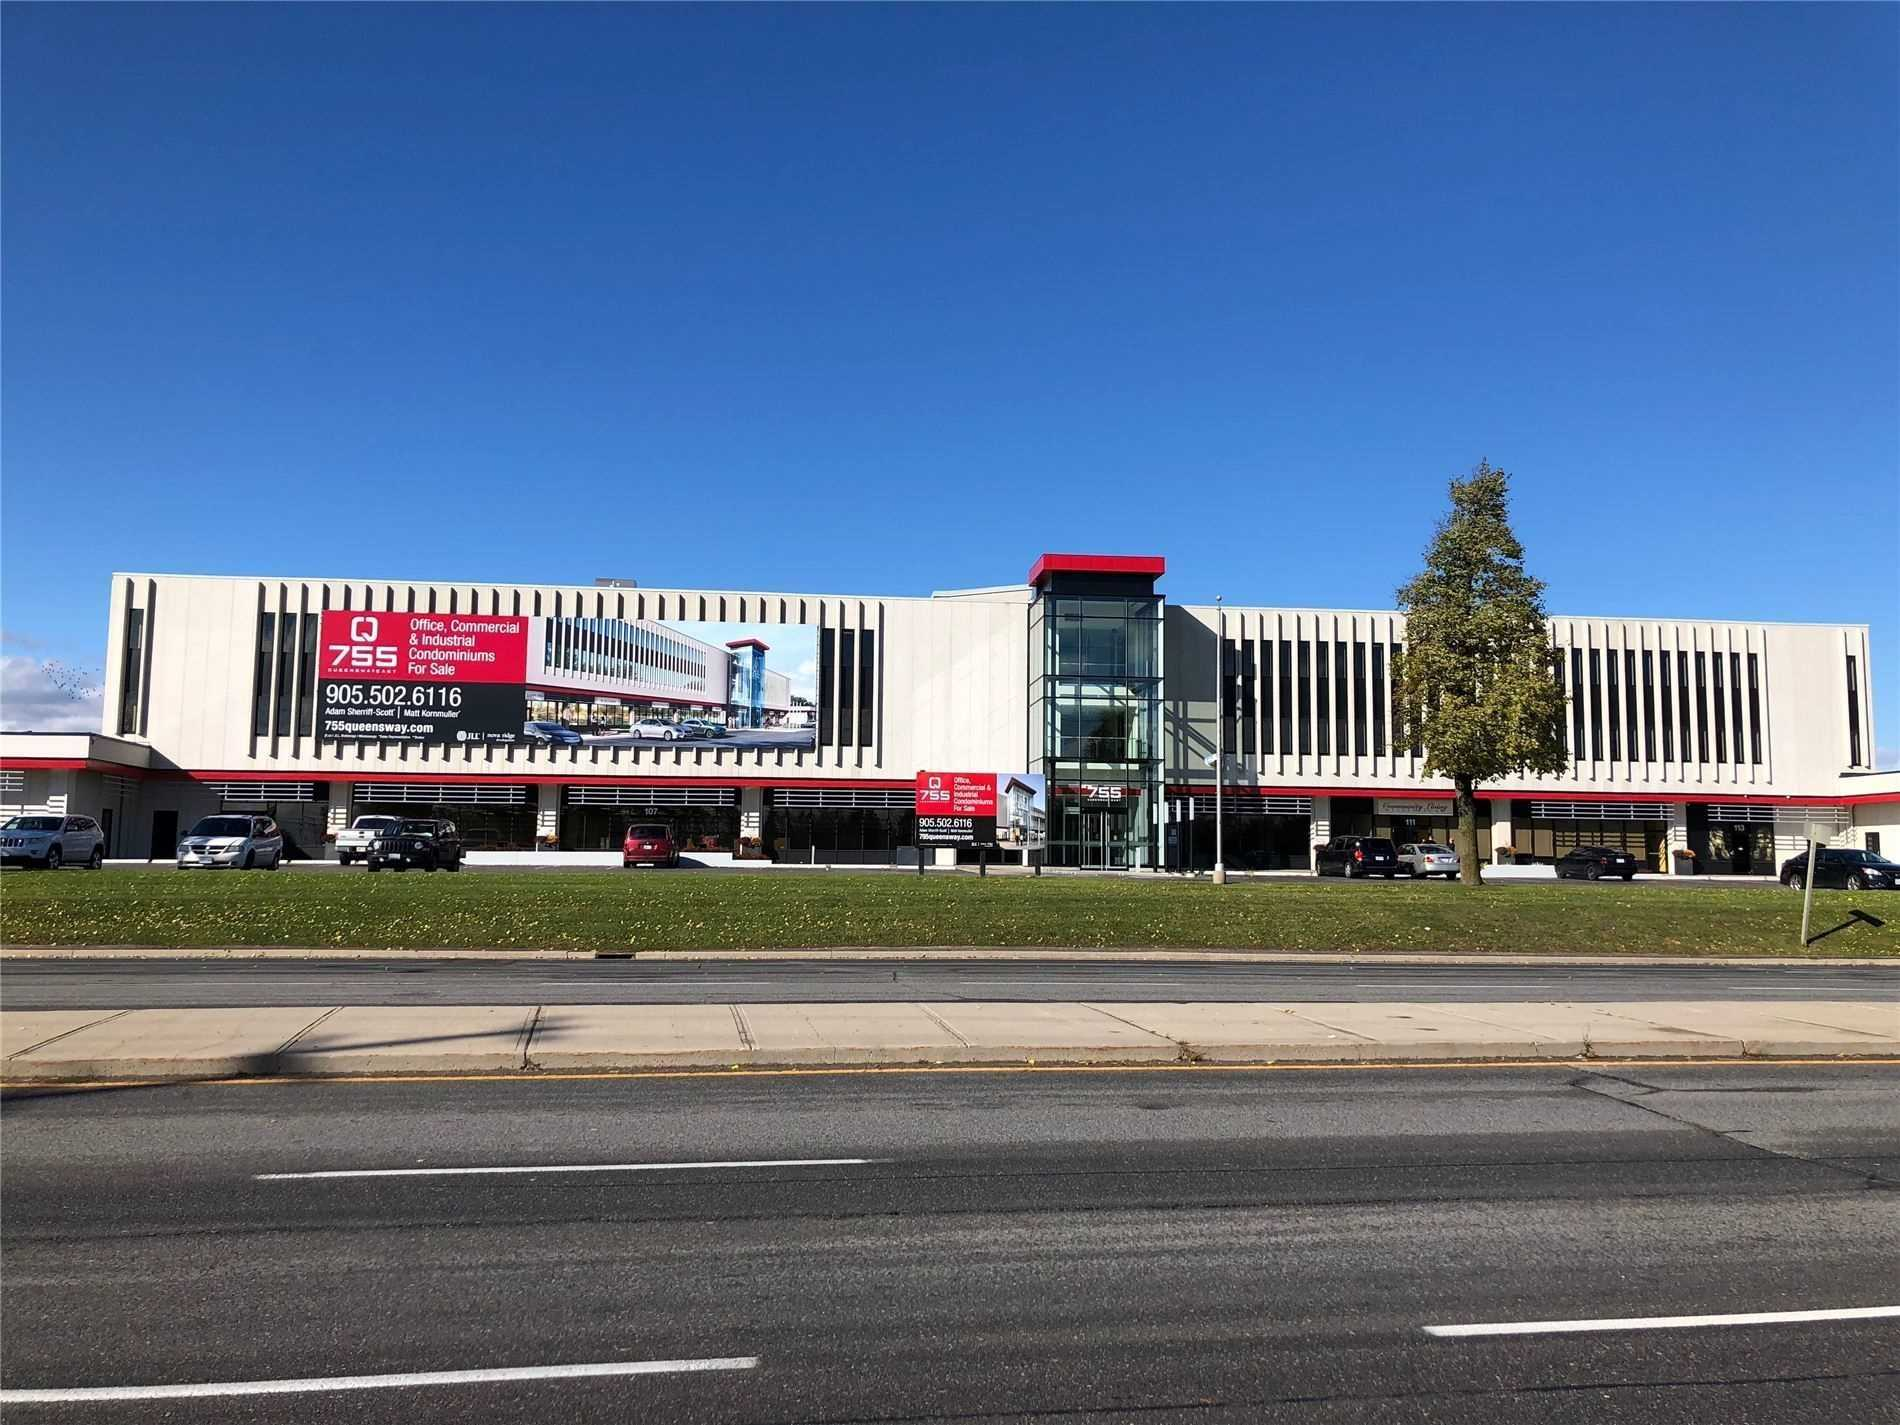 Commercial/retail For Sale In Mississauga , ,Commercial/retail,For Sale,5A-6-7,Queensway